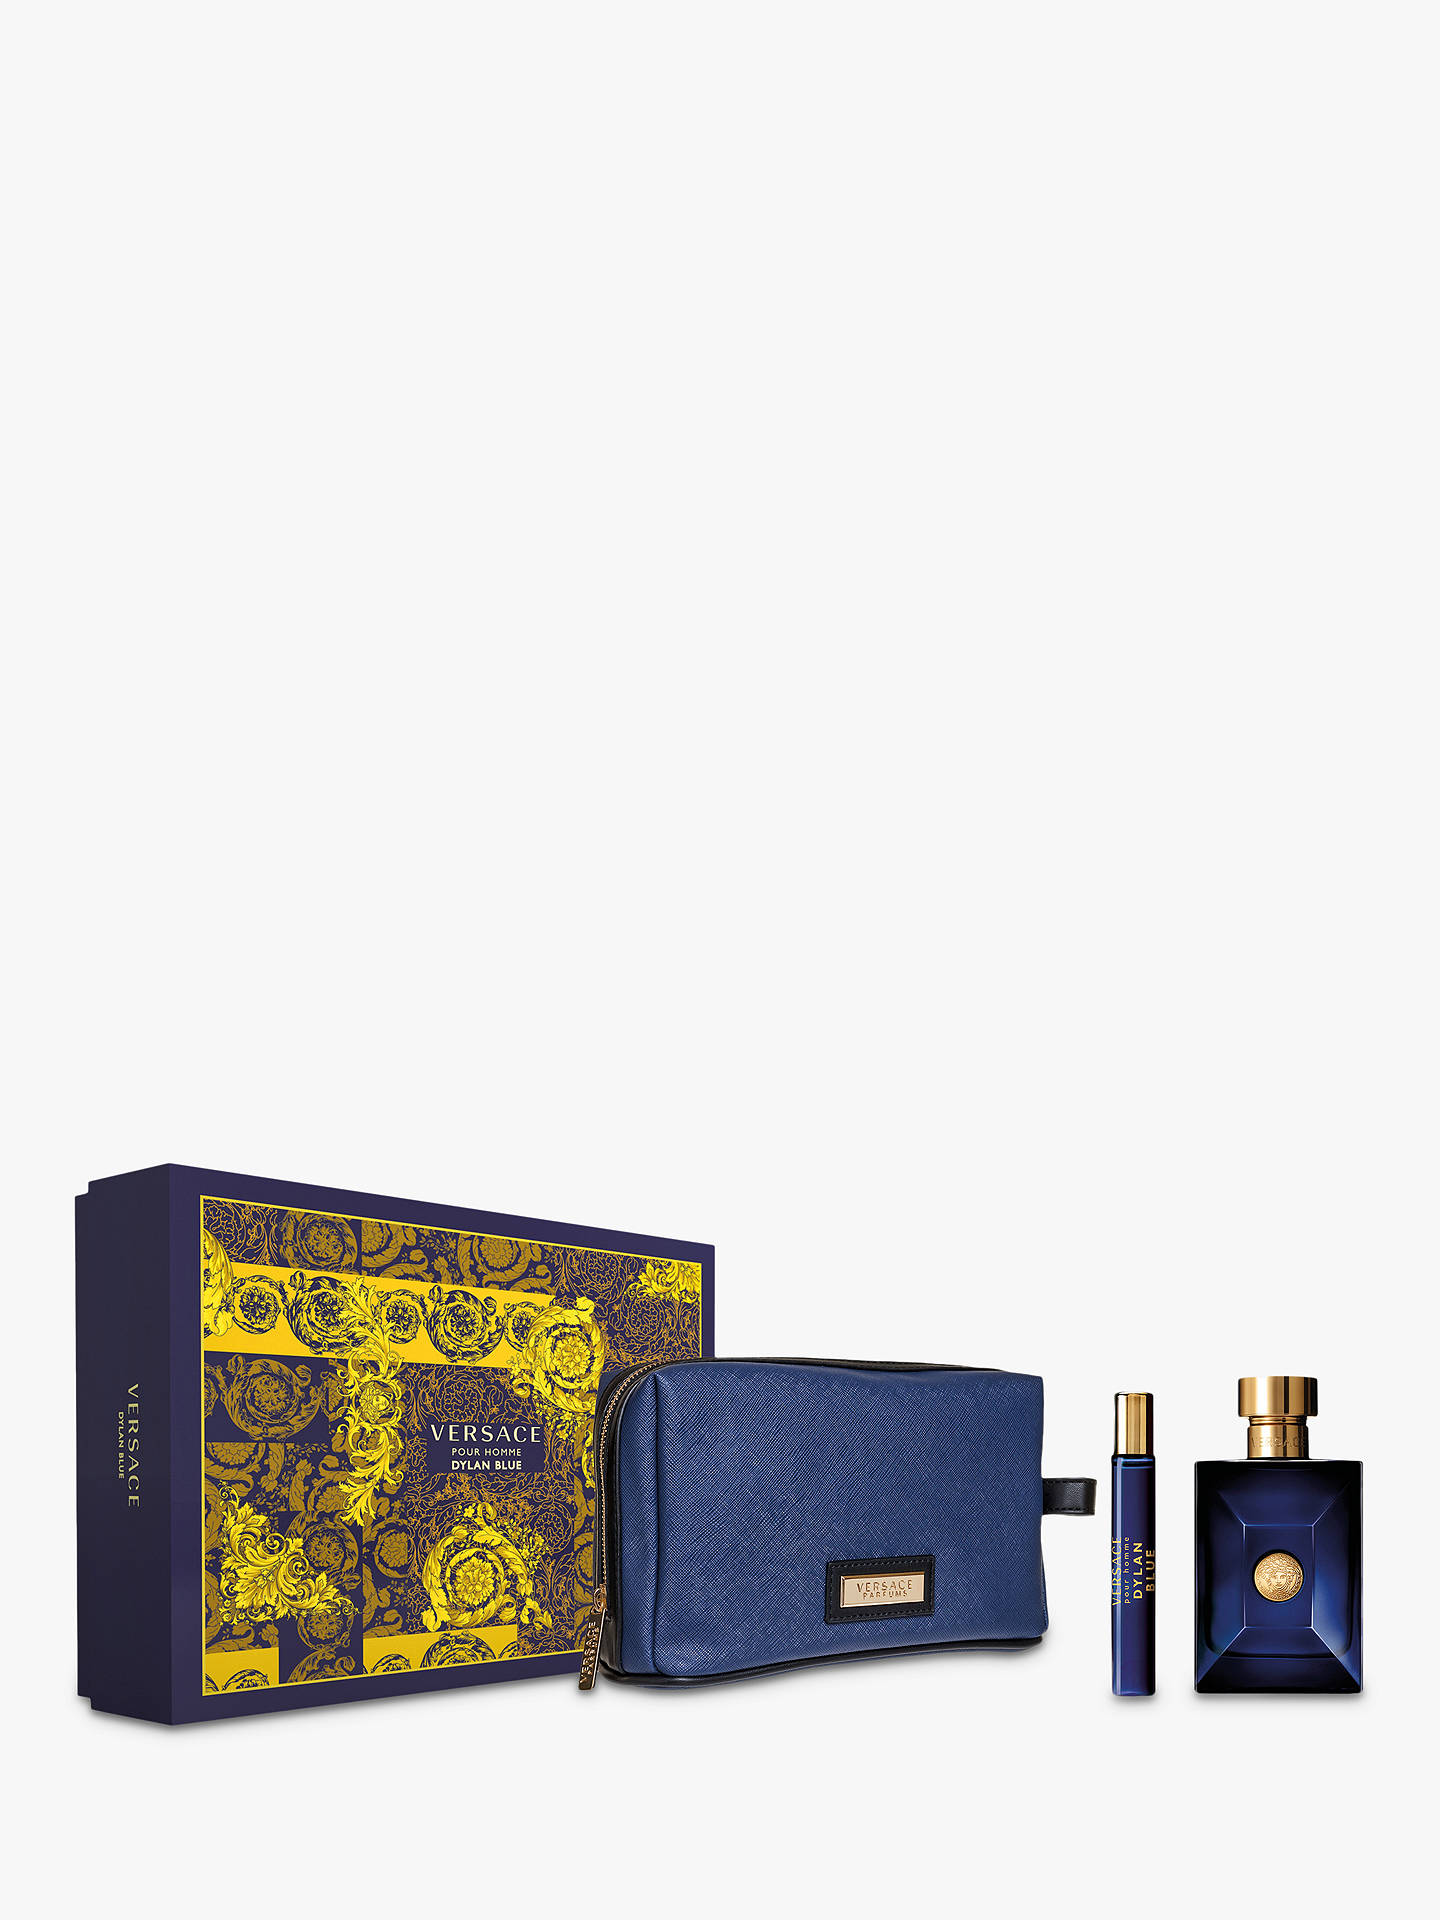 BuyVersace Dylan Blue 100ml Eau de Toilette Coffret Gift Set Online at  johnlewis.com 55a2cc8805